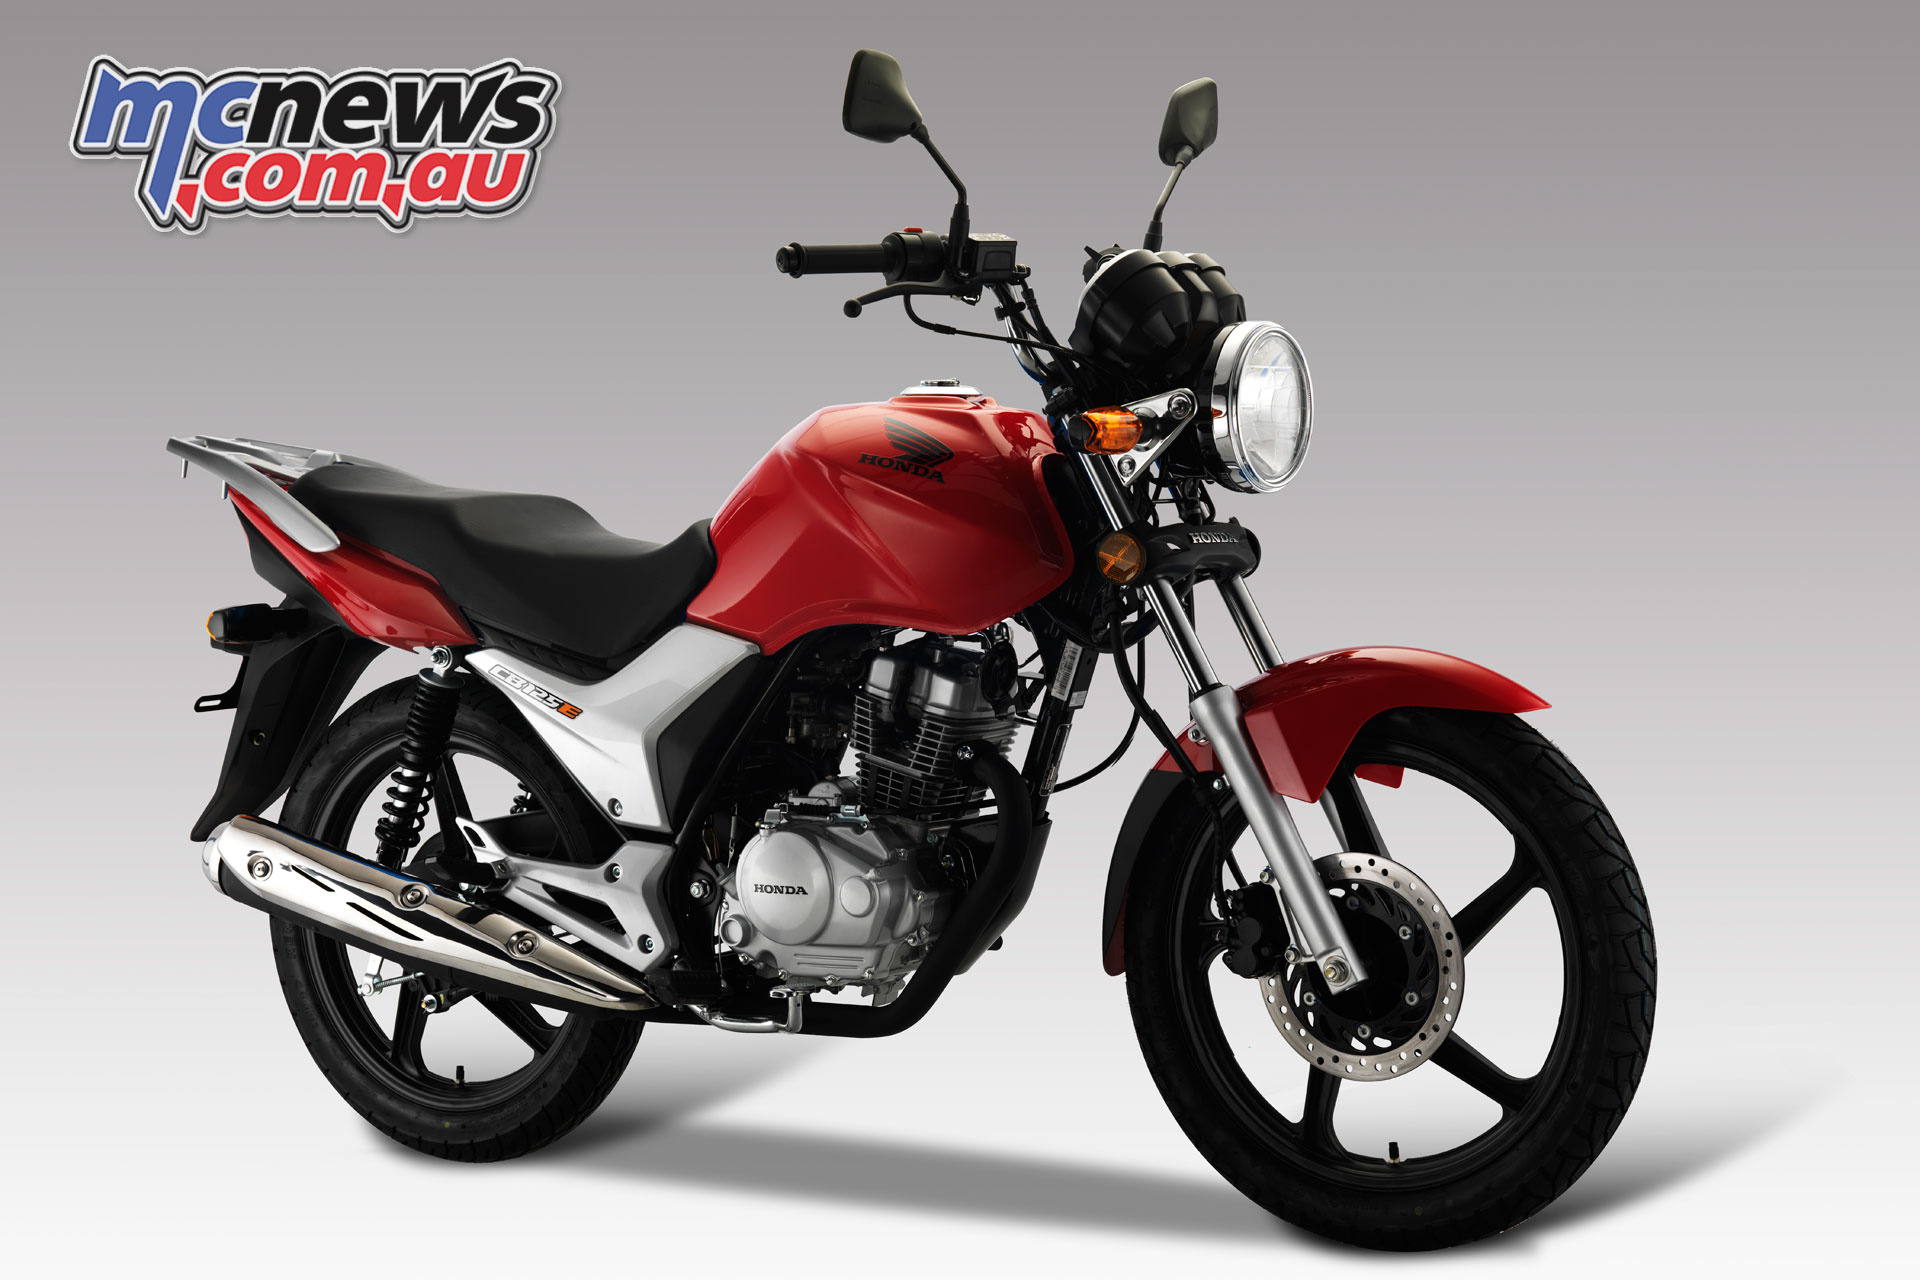 2018 Honda Cb125e Arrives At 2299 Mcnewscomau